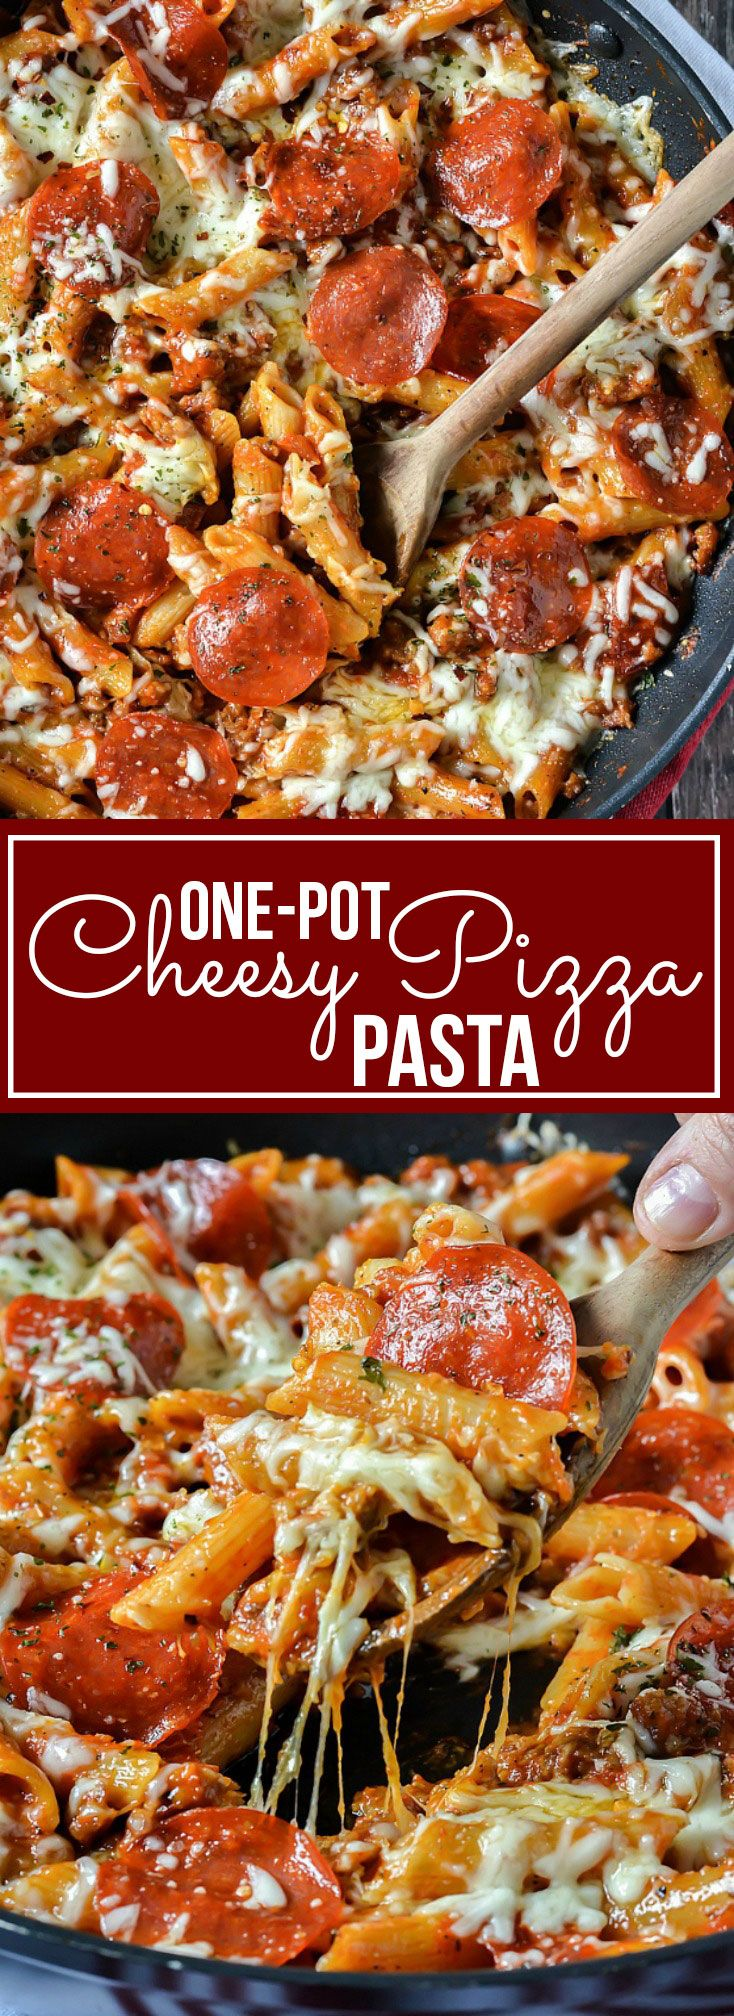 Everything you love about pizza and pasta combined into this delicious One-Pot Cheesy Pizza Pasta ready in about 30 minutes!